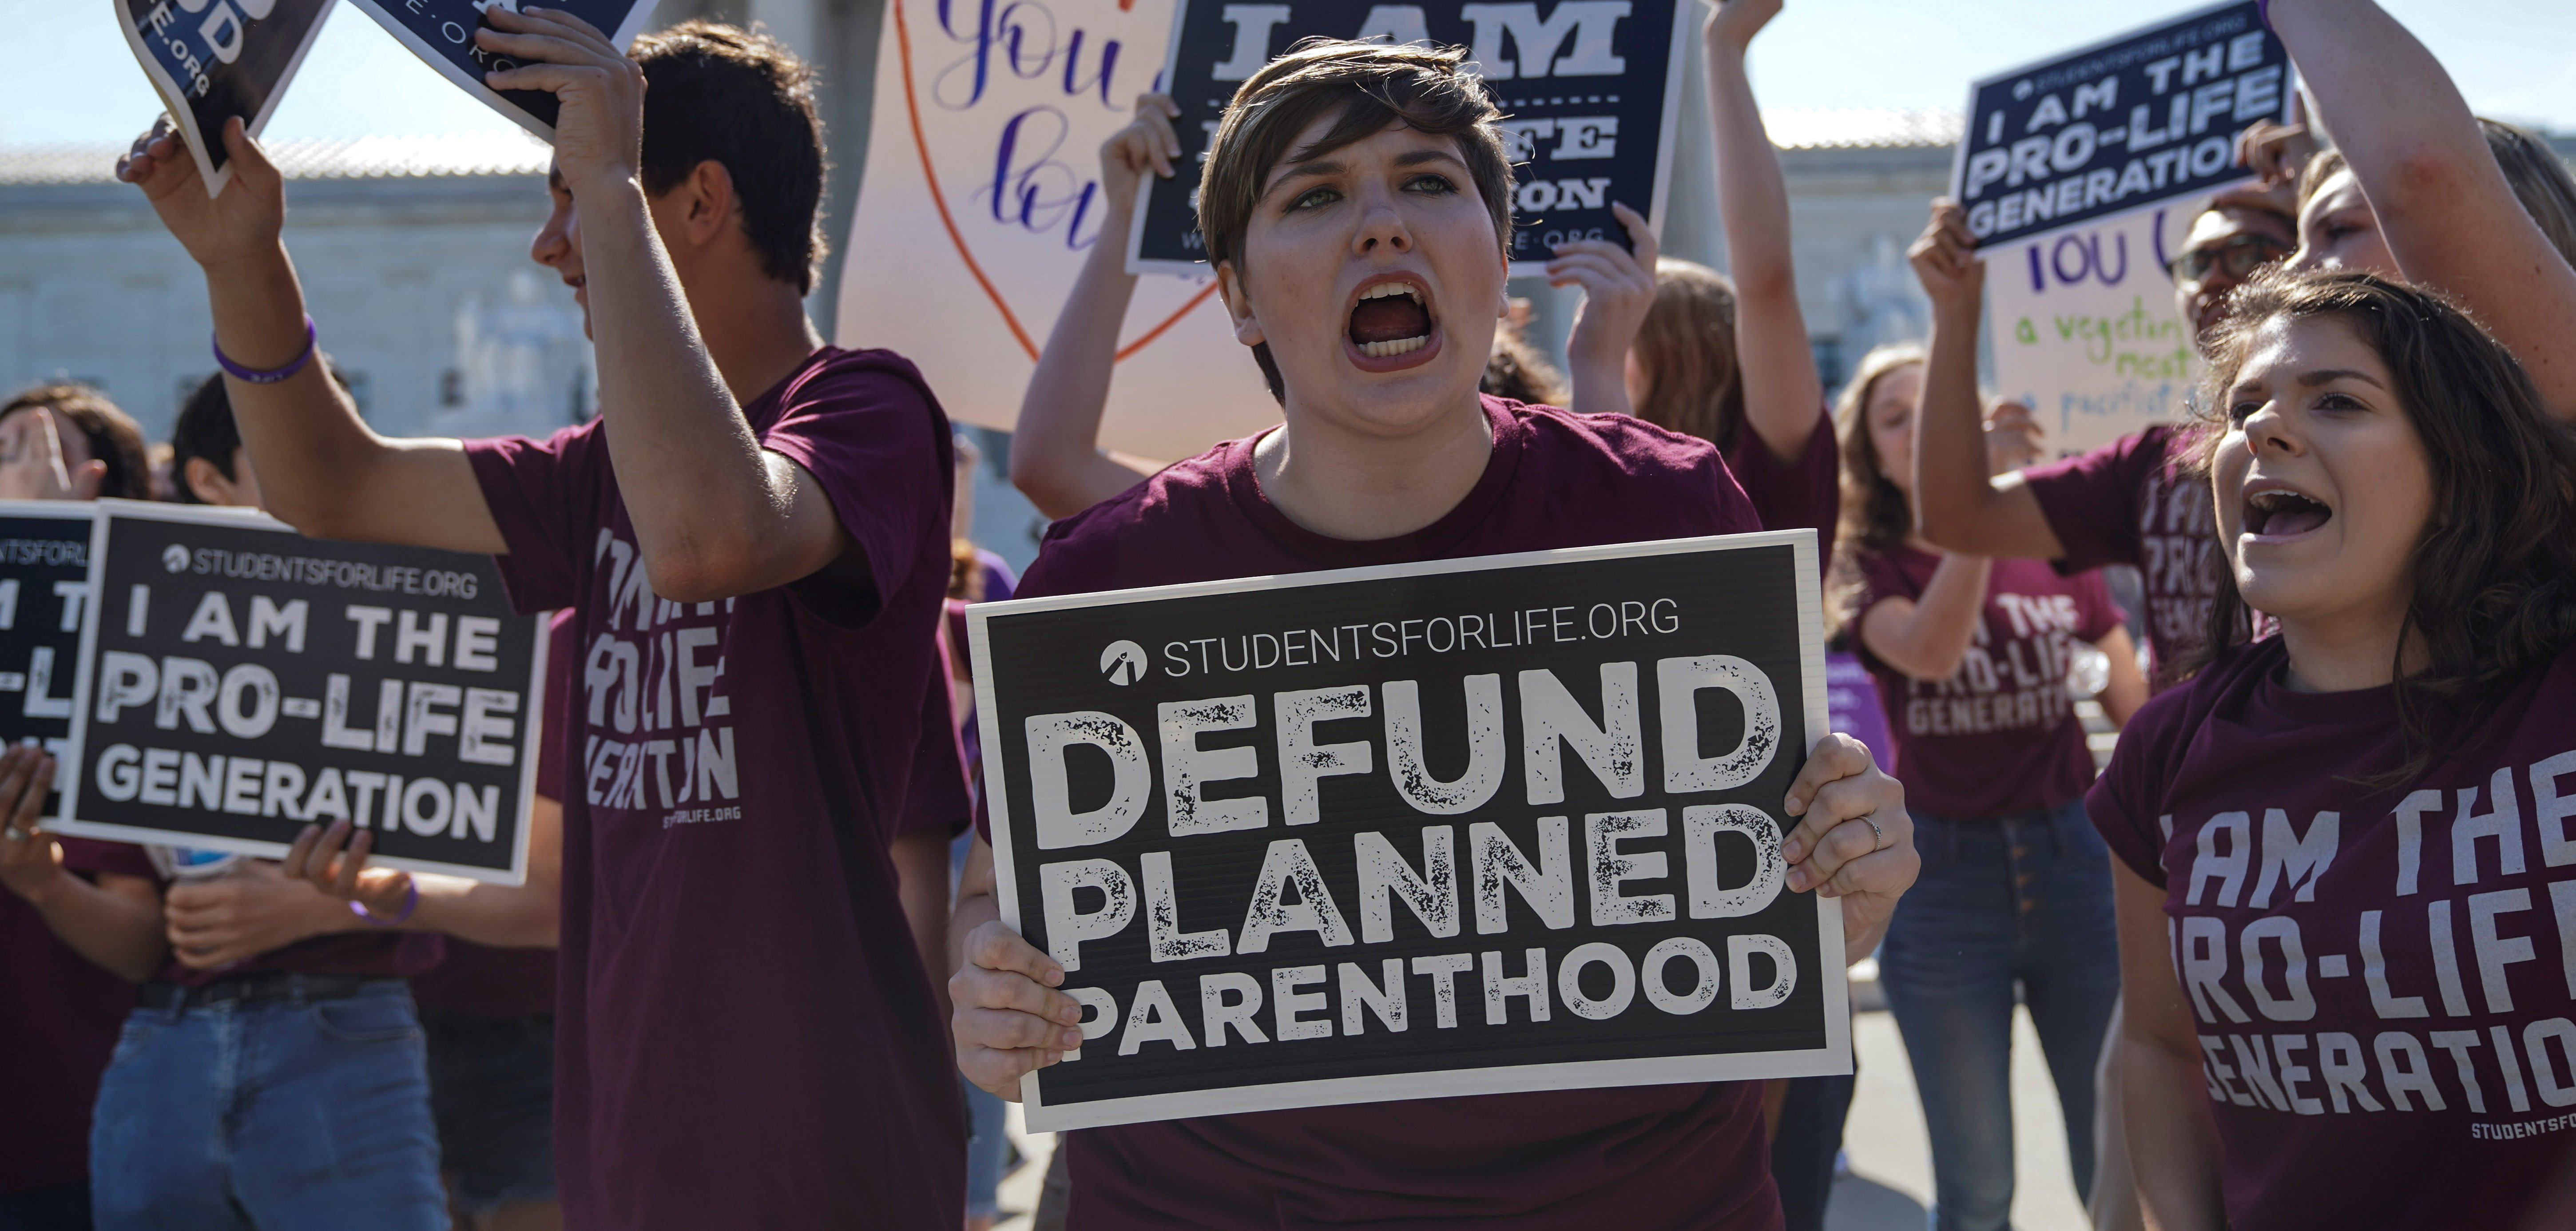 Pro-life and pro-choice protesters rally outside the U.S. Supreme Court waiting for the National Institute of Family and Life Advocates v. Becerra case, which remains pending, in Washington, U.S., June 25, 2018. REUTERS/Toya Sarno Jordan